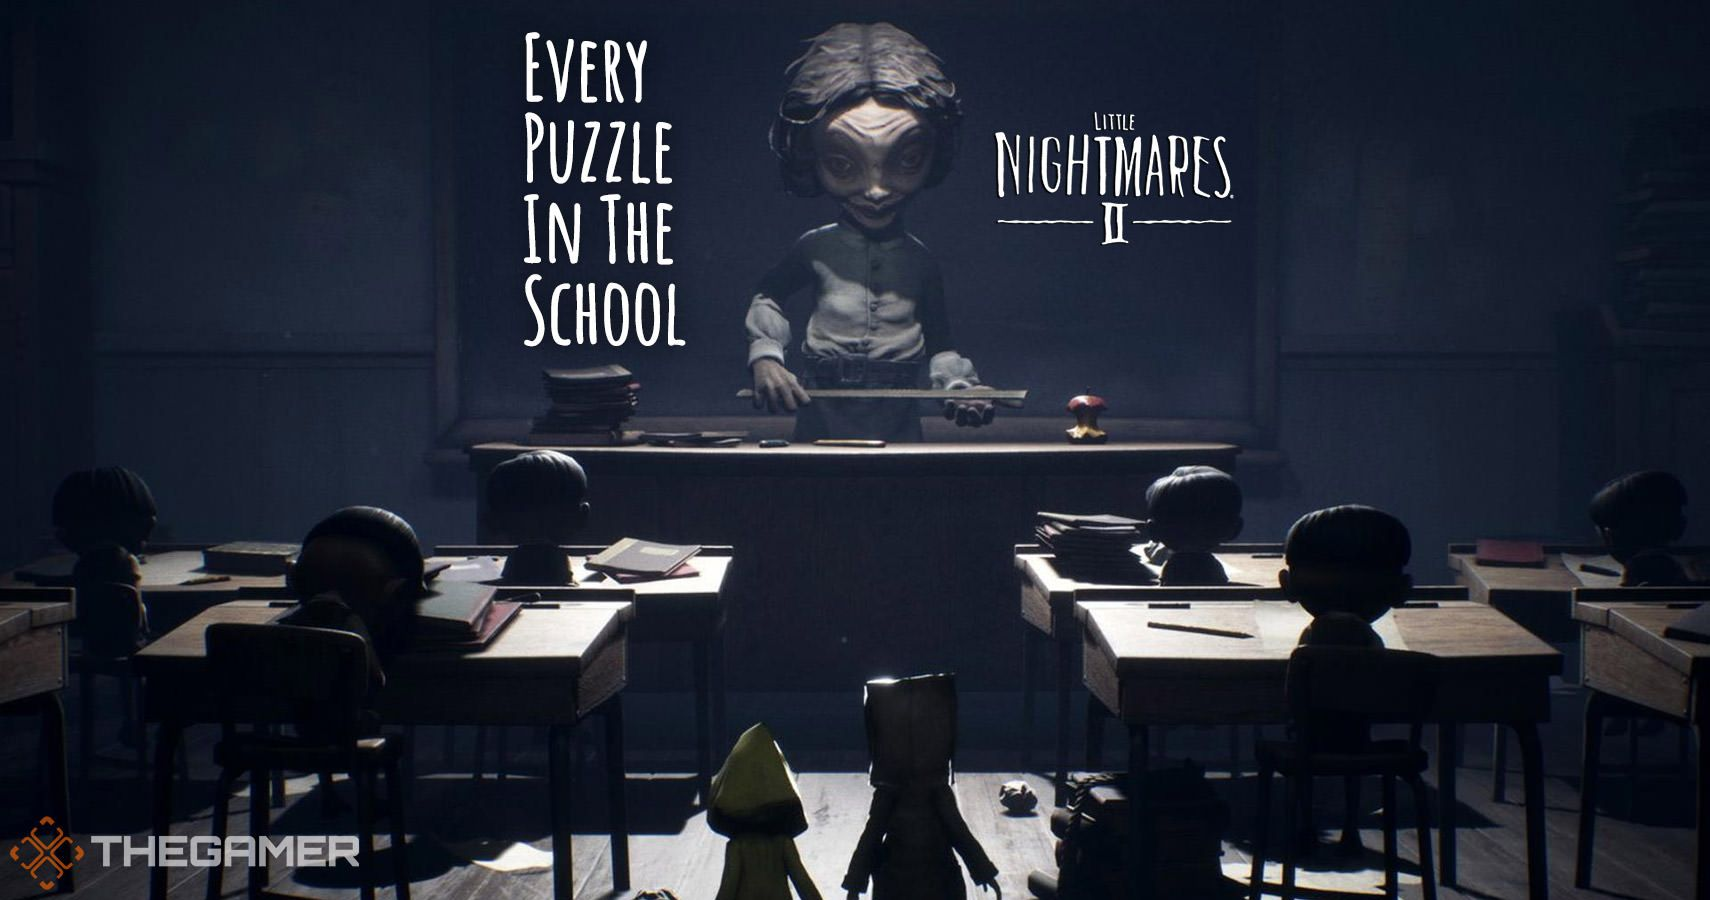 Little Nightmares 2: Every Puzzle In The School And How To Solve Each One Of Them